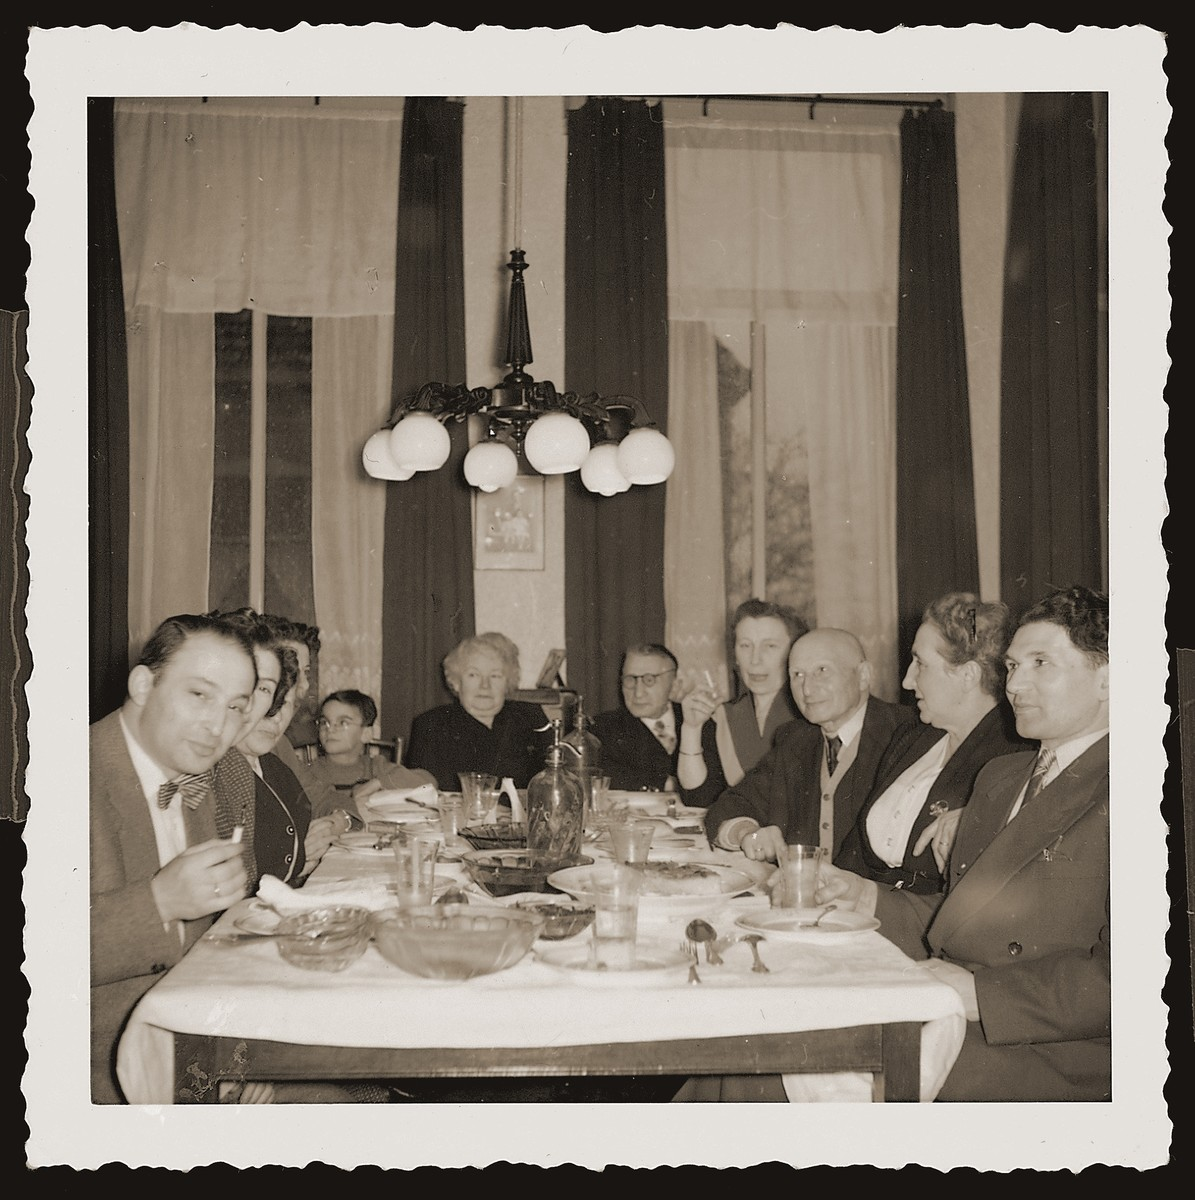 A family gathering at the home of Louis and Ida Meijer.  Pictured from left to right are: Richard Meijer, Bep Meijer Zion, Jaap Laufer (boy), Ida and Louis Meijer, Rien Hartog, Joseph and Hennie Meijer, and Sallie Zion.